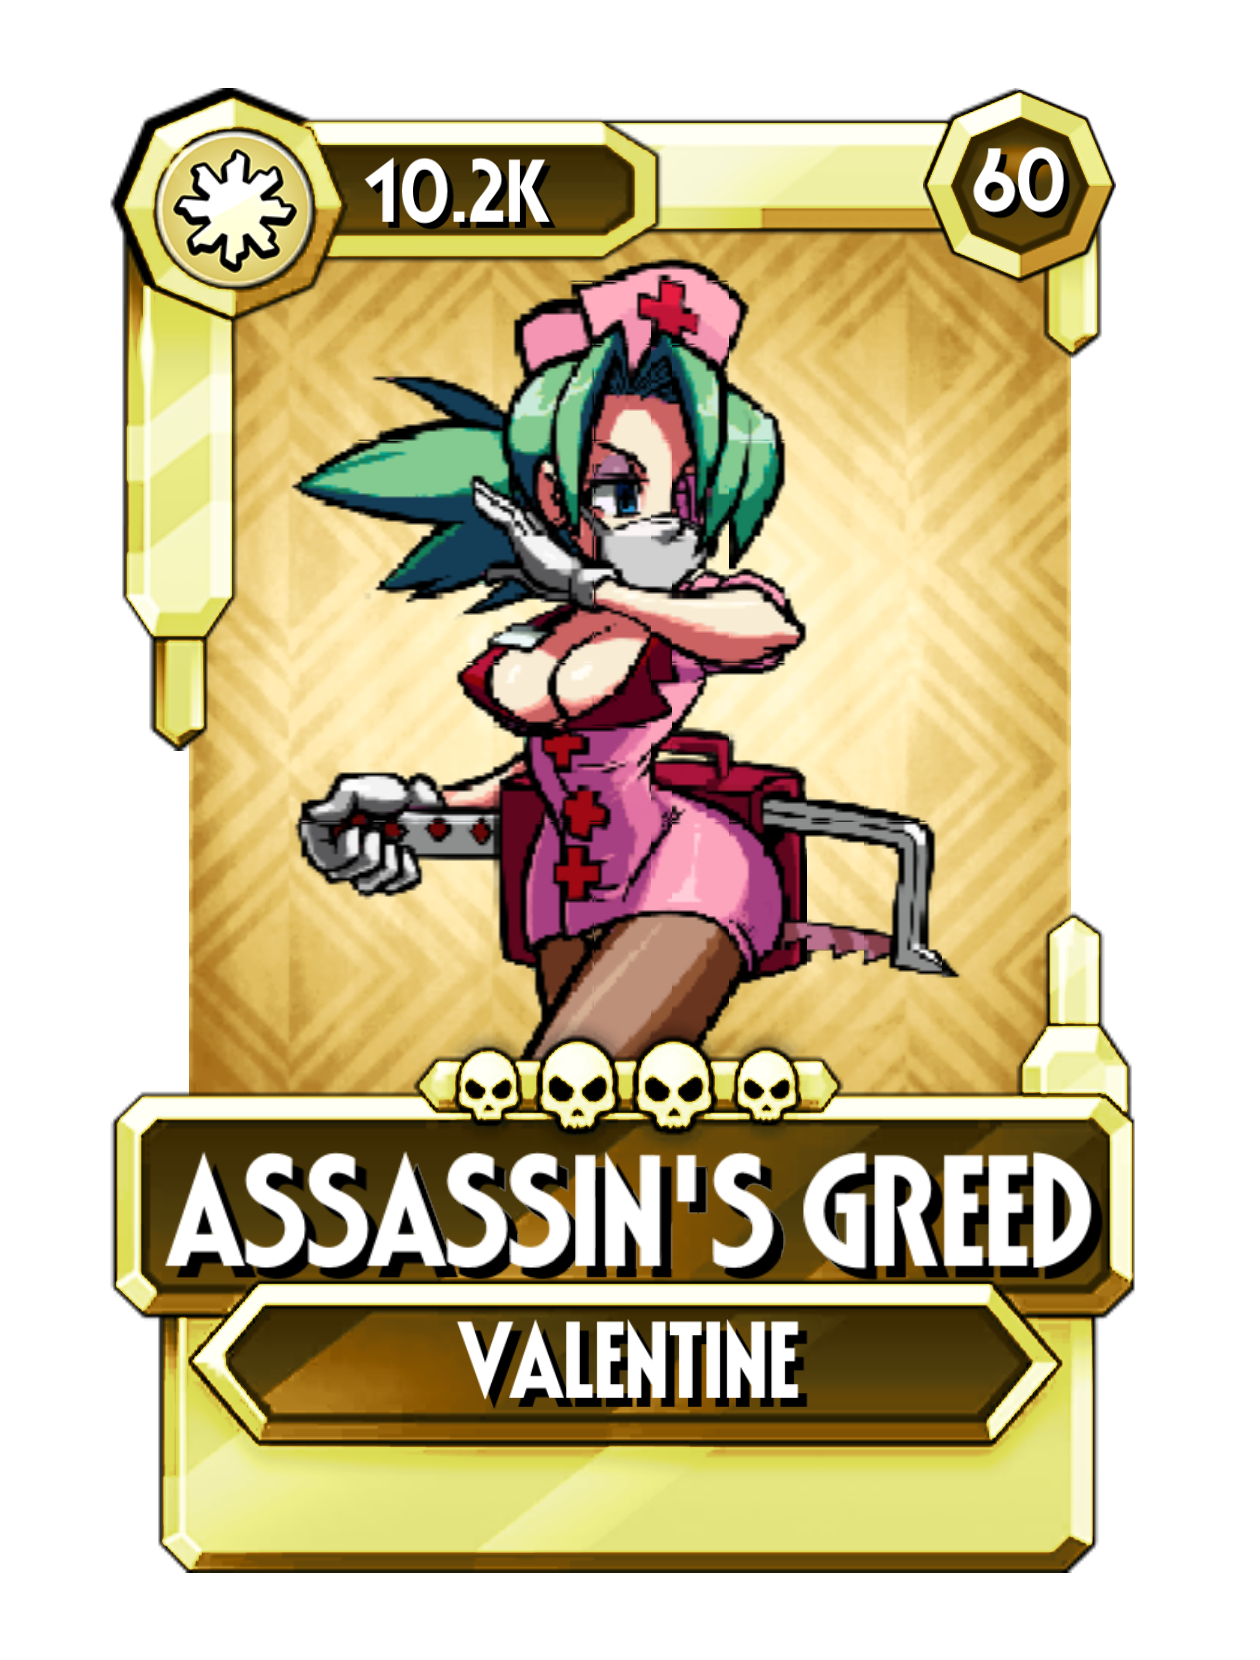 Assassin's Greed